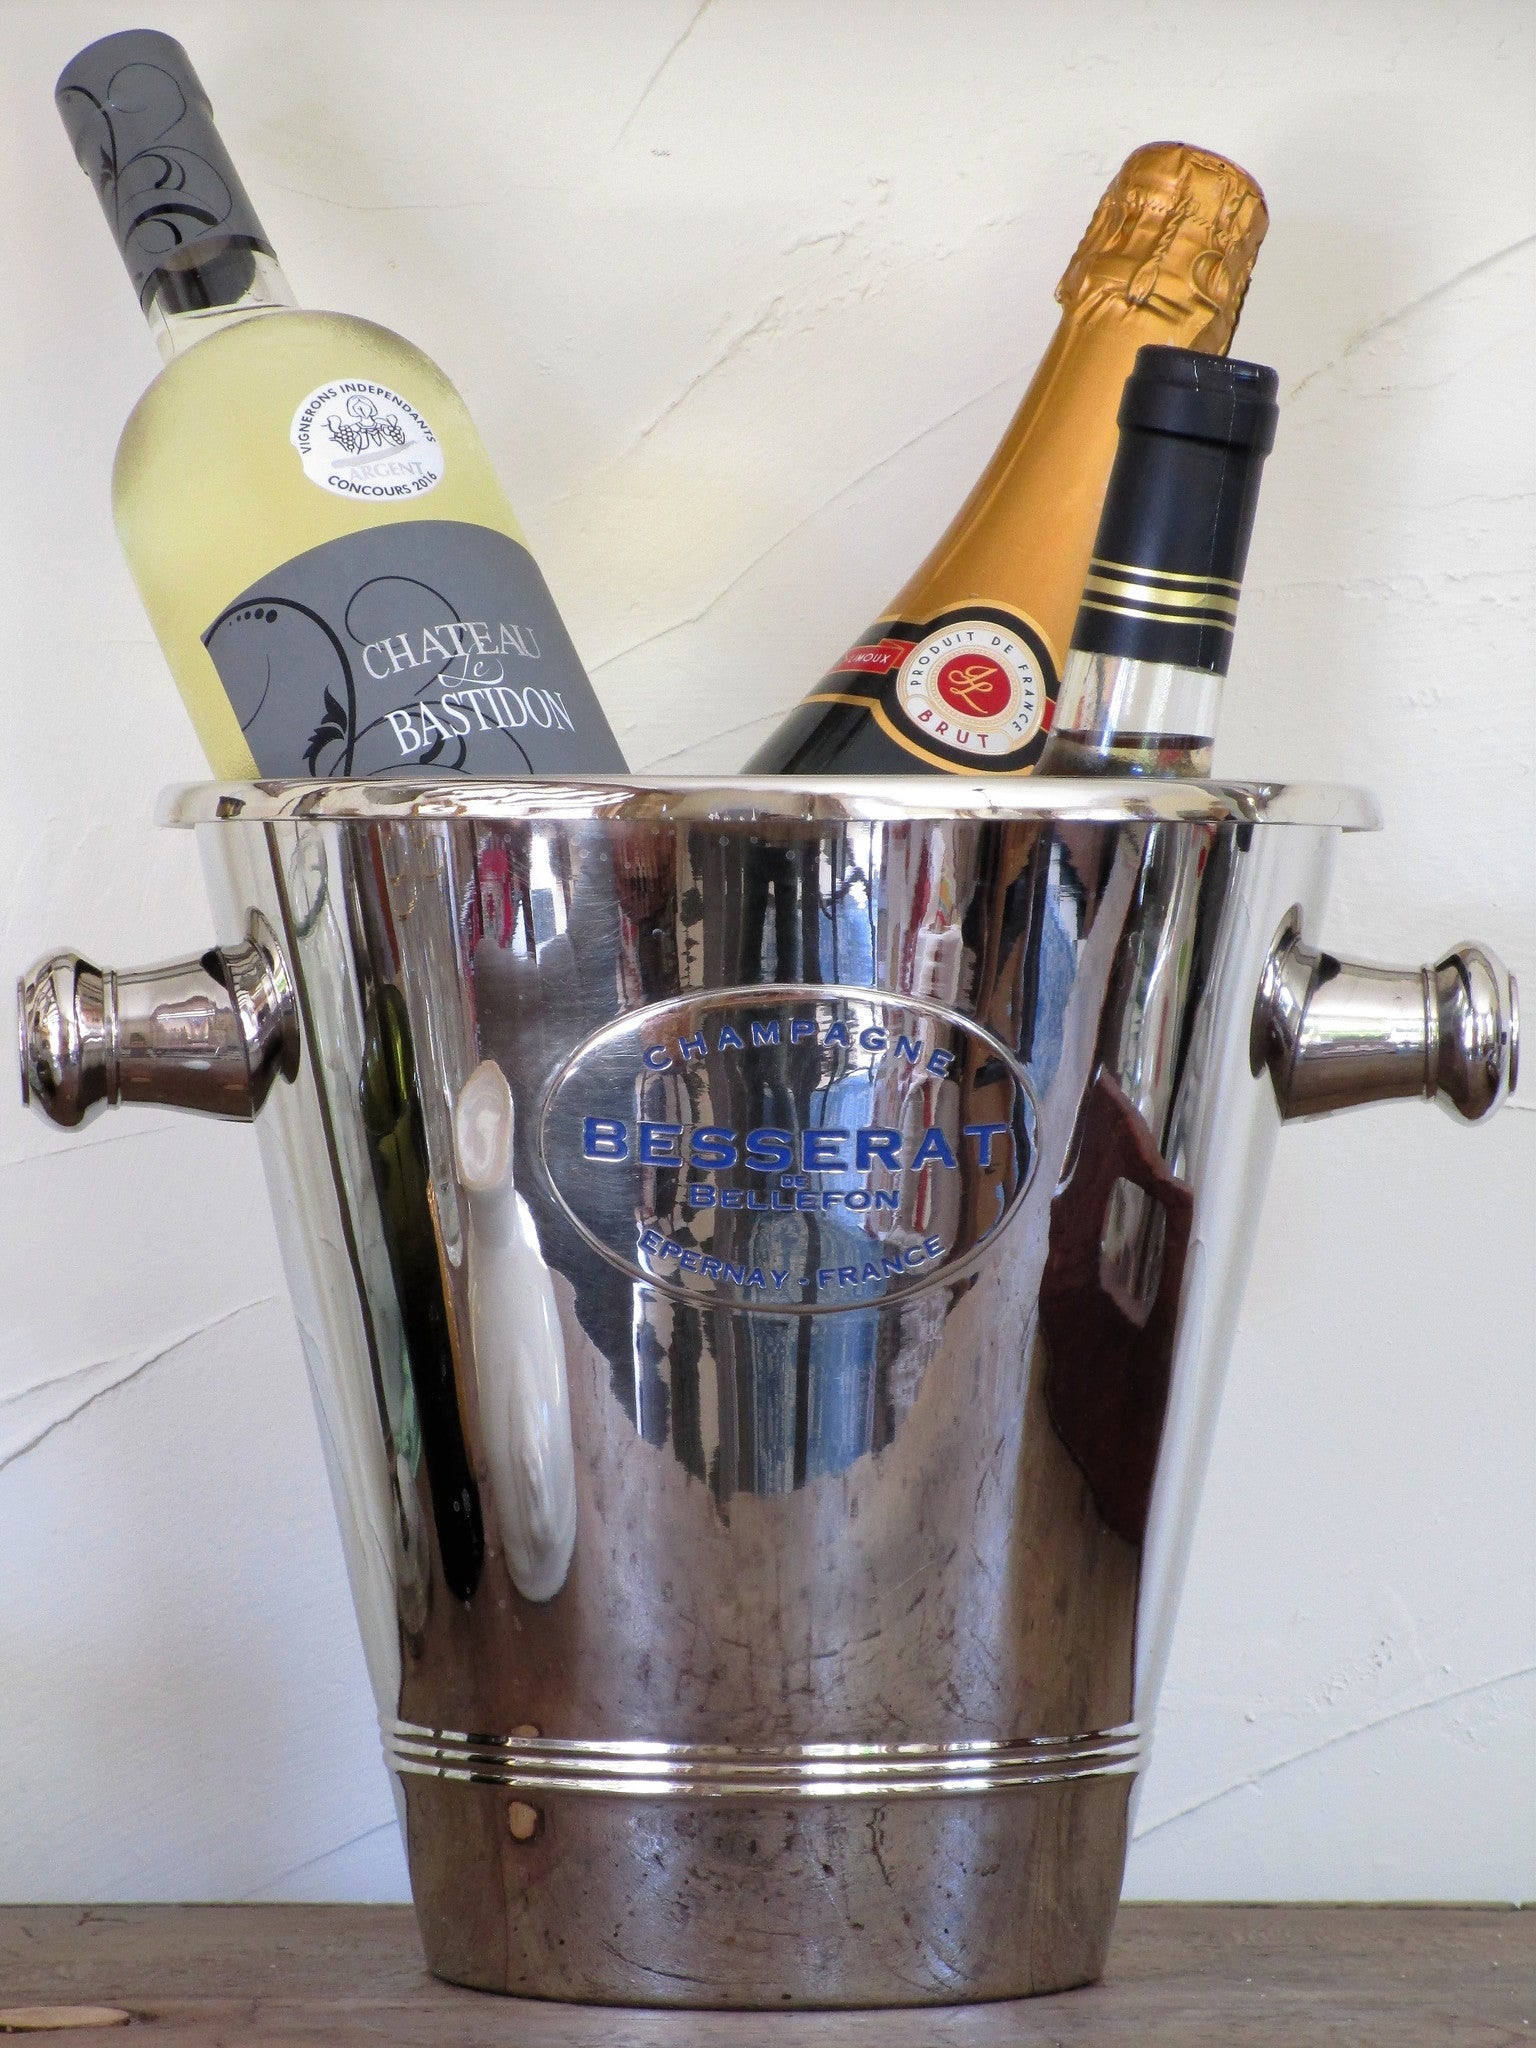 Besserat de Bellefon Champagne bucket - 3 bottle capacity